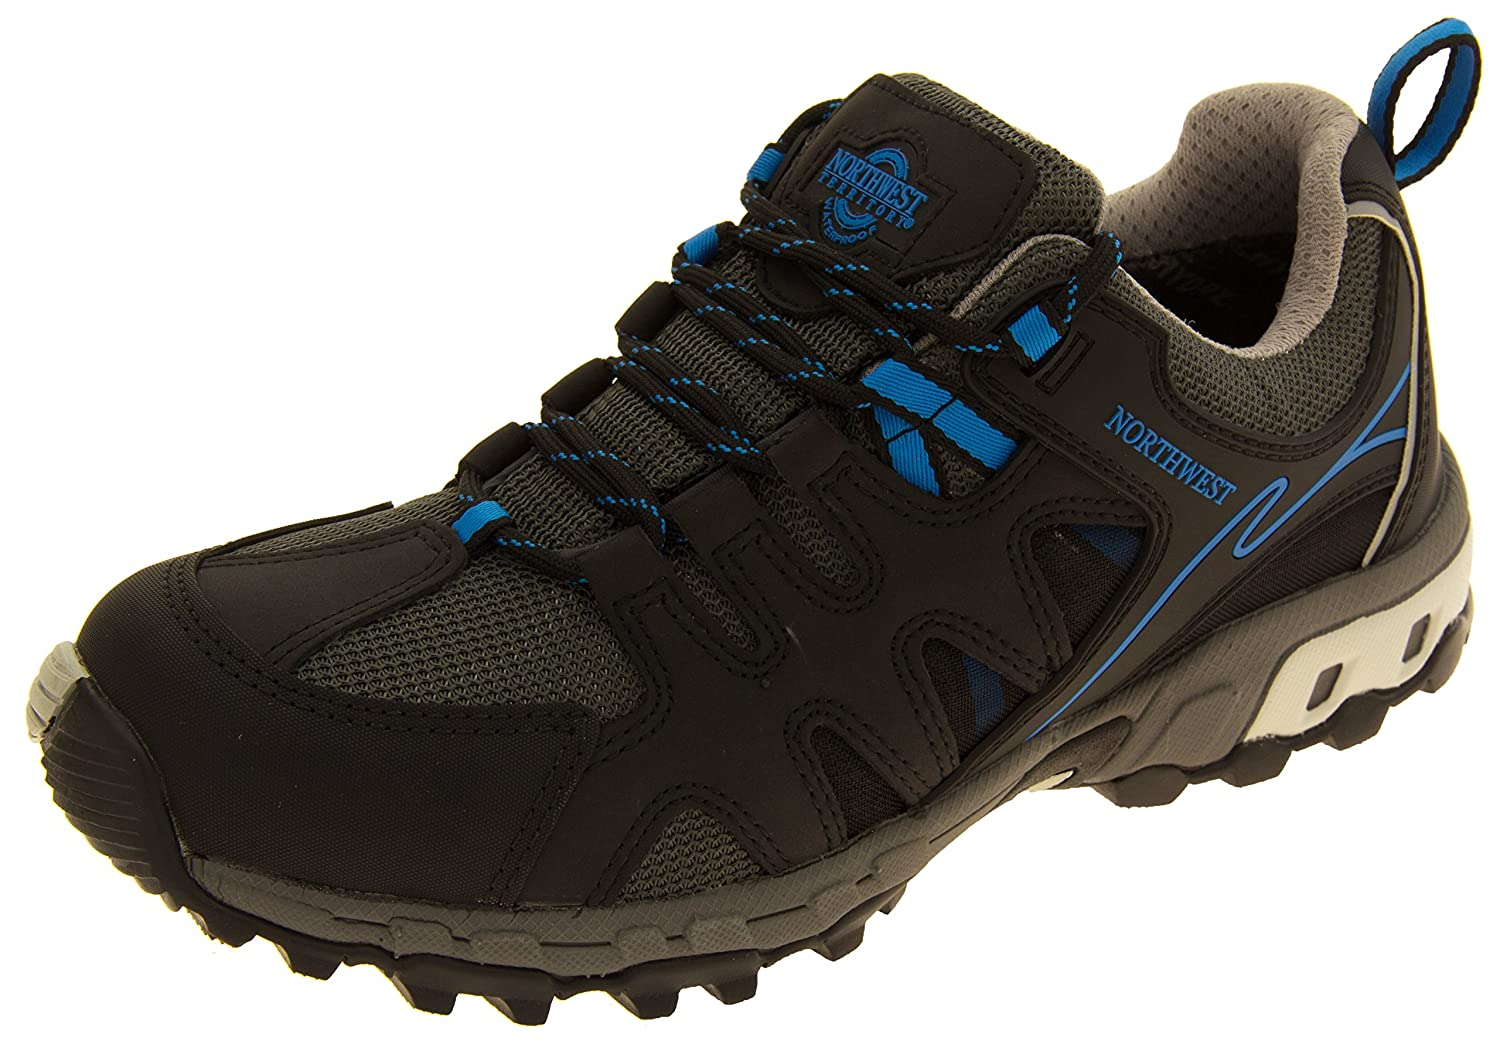 ca476f69cfc Mens NORTHWEST TERRITORY Leather Hiking Waterproof Shoes / Trainers